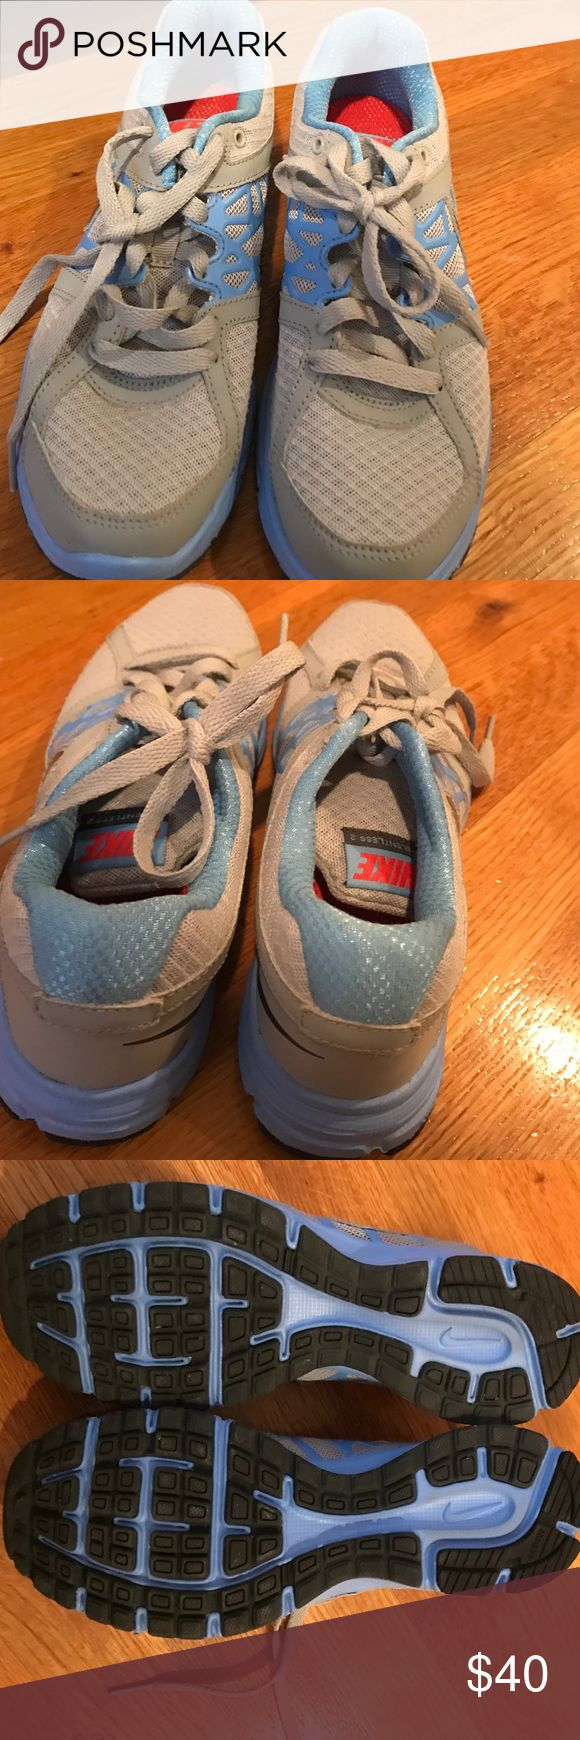 Like New Nike Sneakers size 6.5! Like new Nike Sneakers size 6.5.  Beautiful blue and gray.  Only worn ones in perfect condition but need a new home! Nike Shoes Sneakers